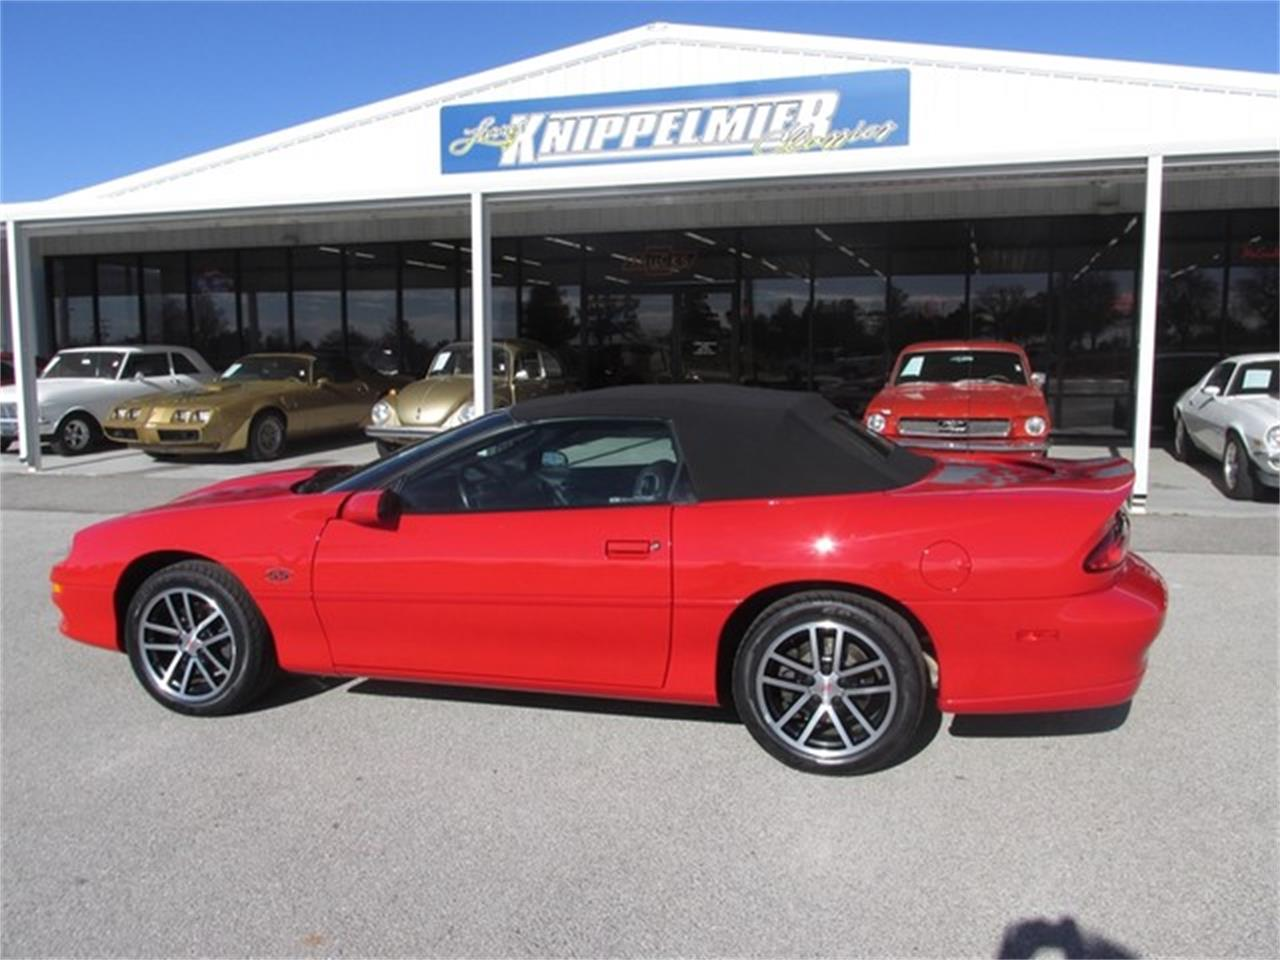 Large Picture of '02 Chevrolet Camaro Offered by Knippelmier Classics - DA4T